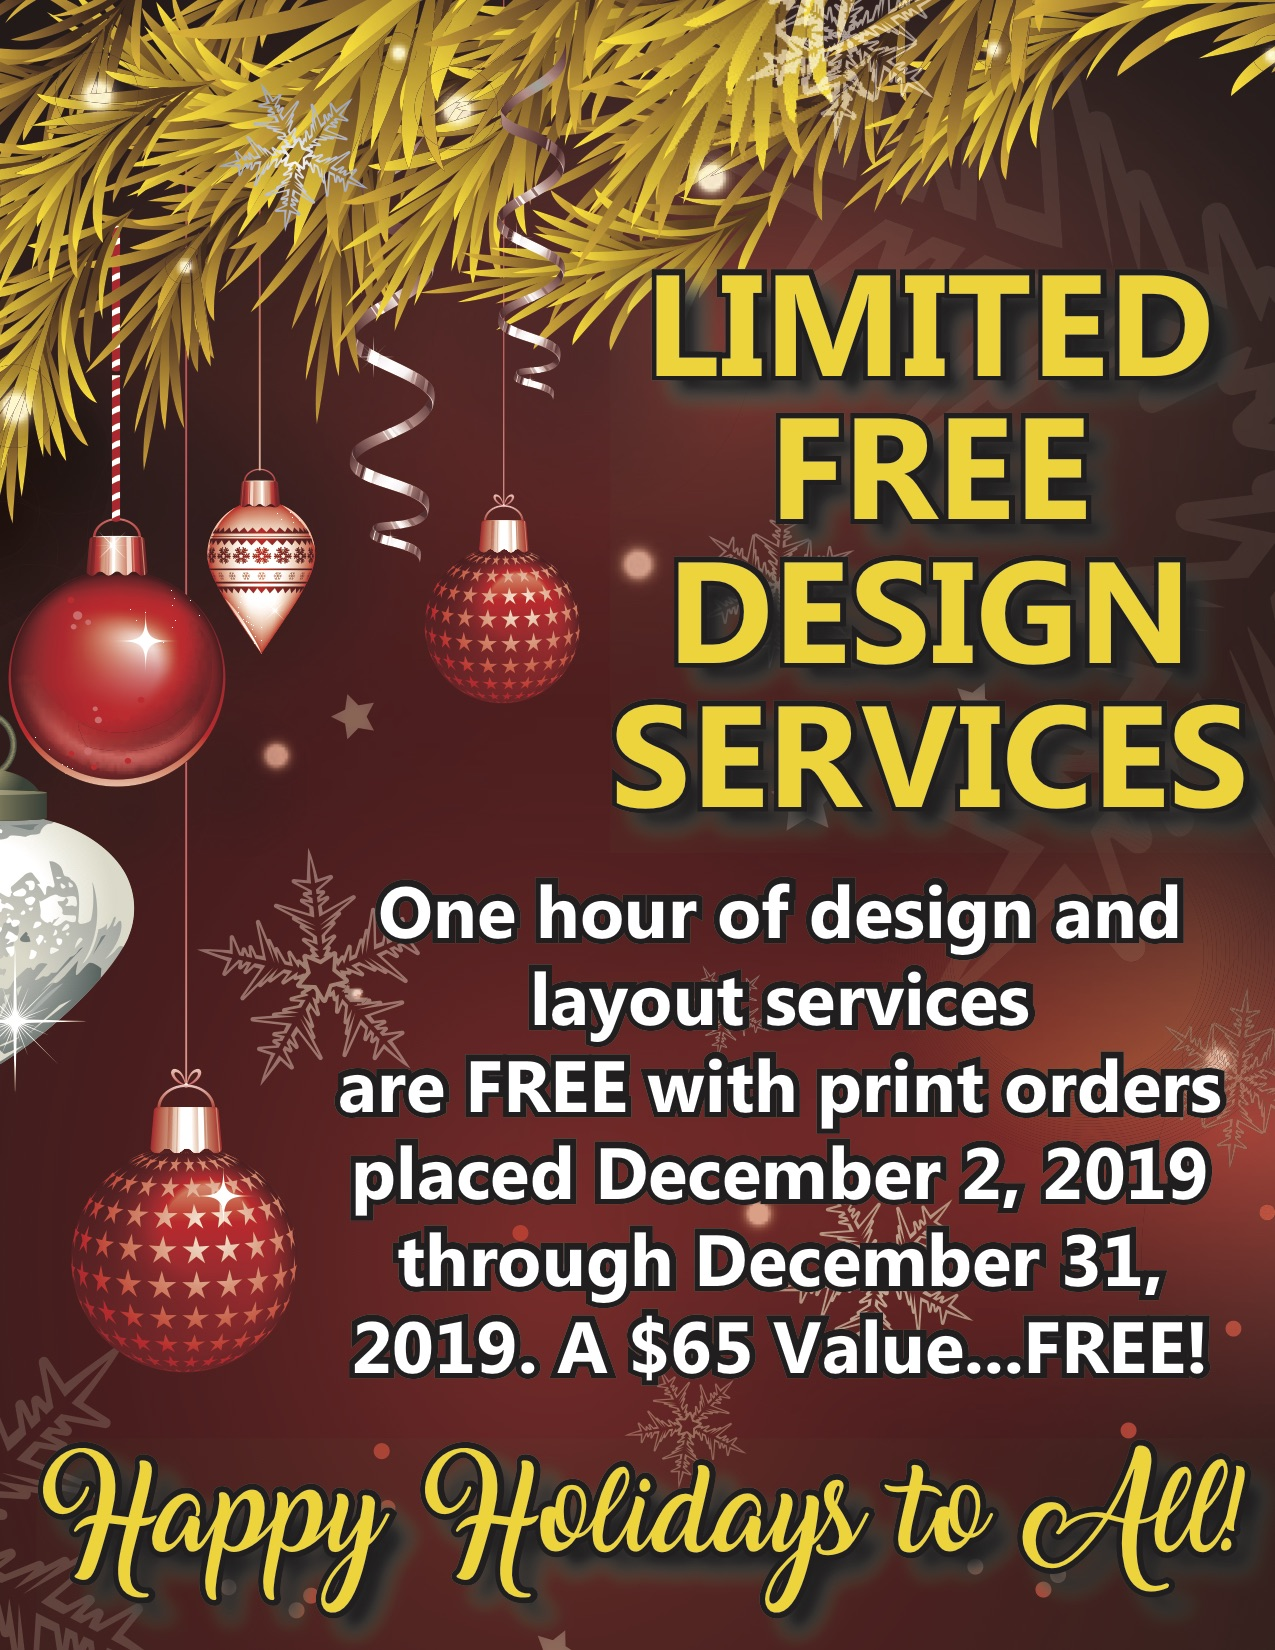 Limited Free Design Services